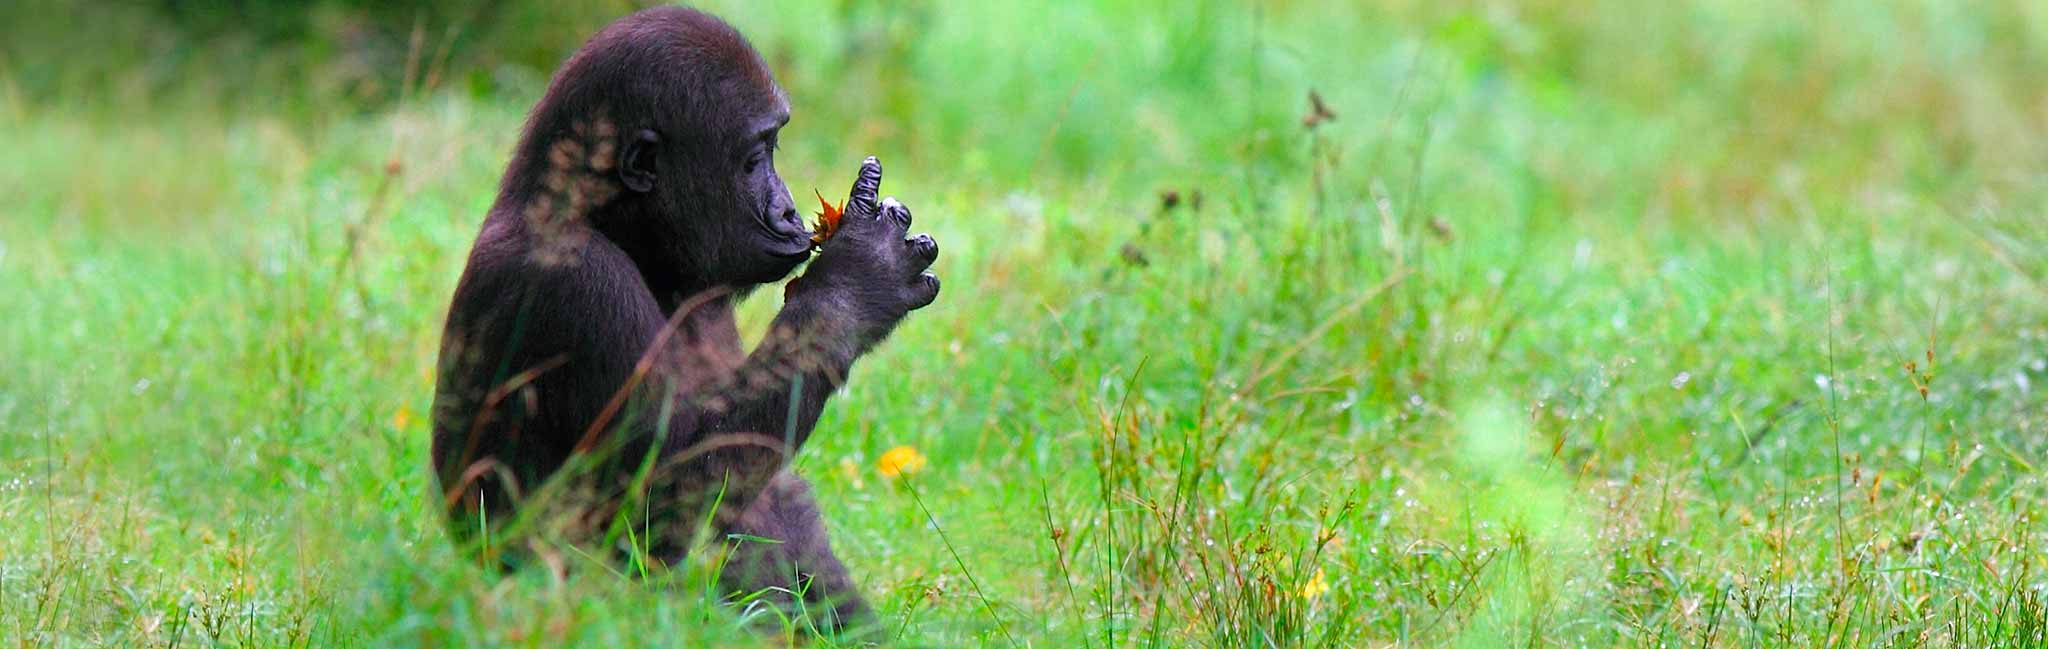 Rwanda Gorilla Trekking and Safari - Gorilla examines flower